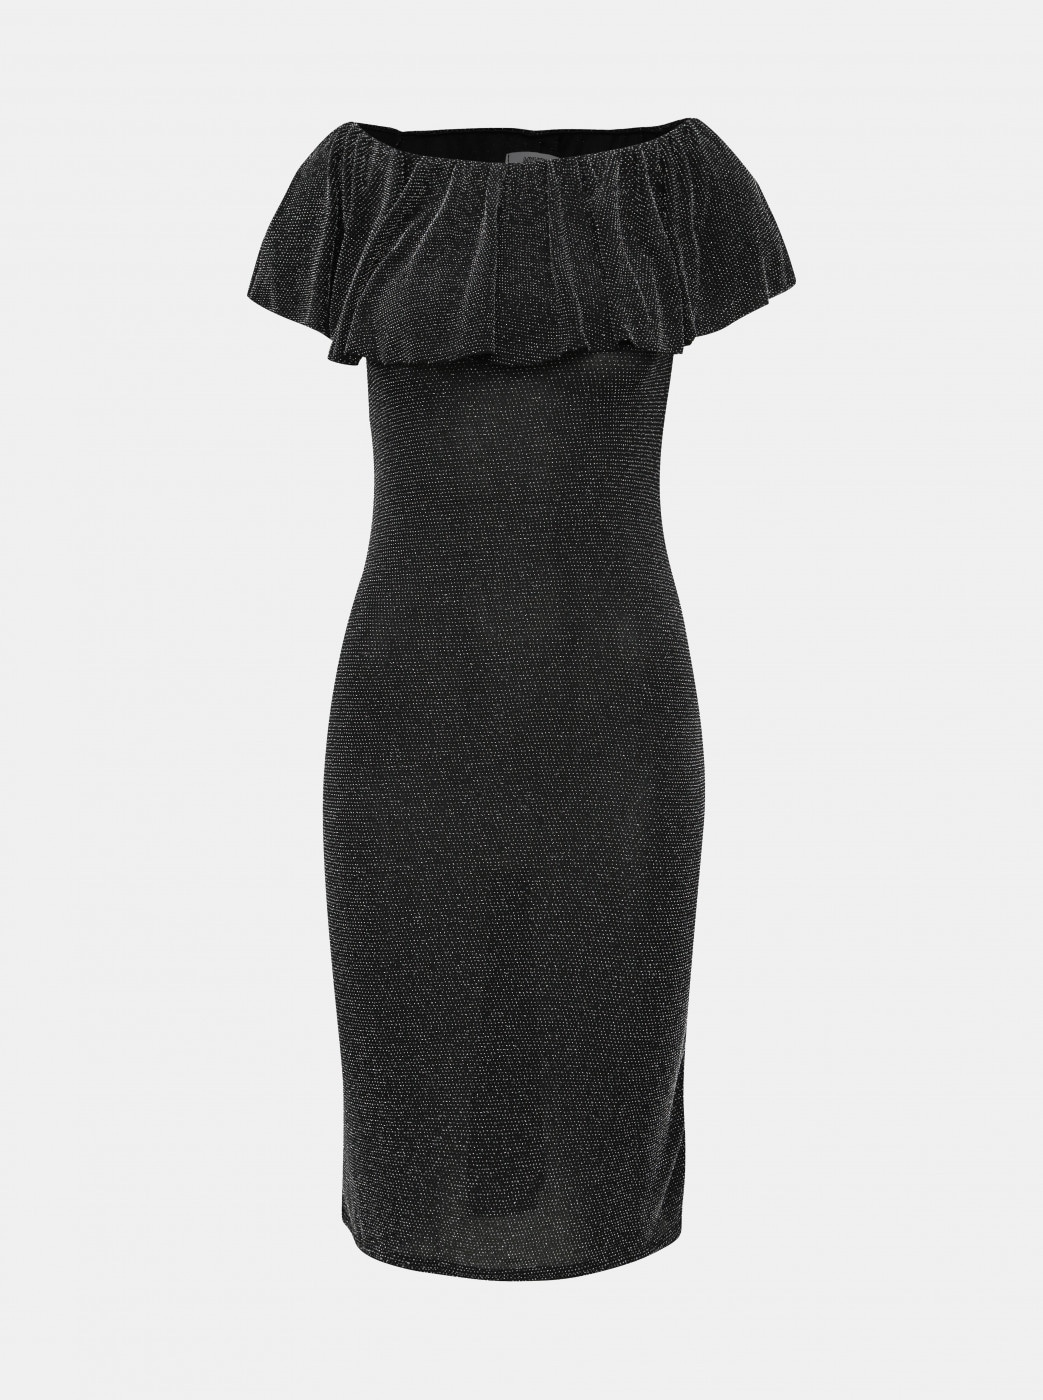 Black sleeve dress with shimmering Haily's Milena effect